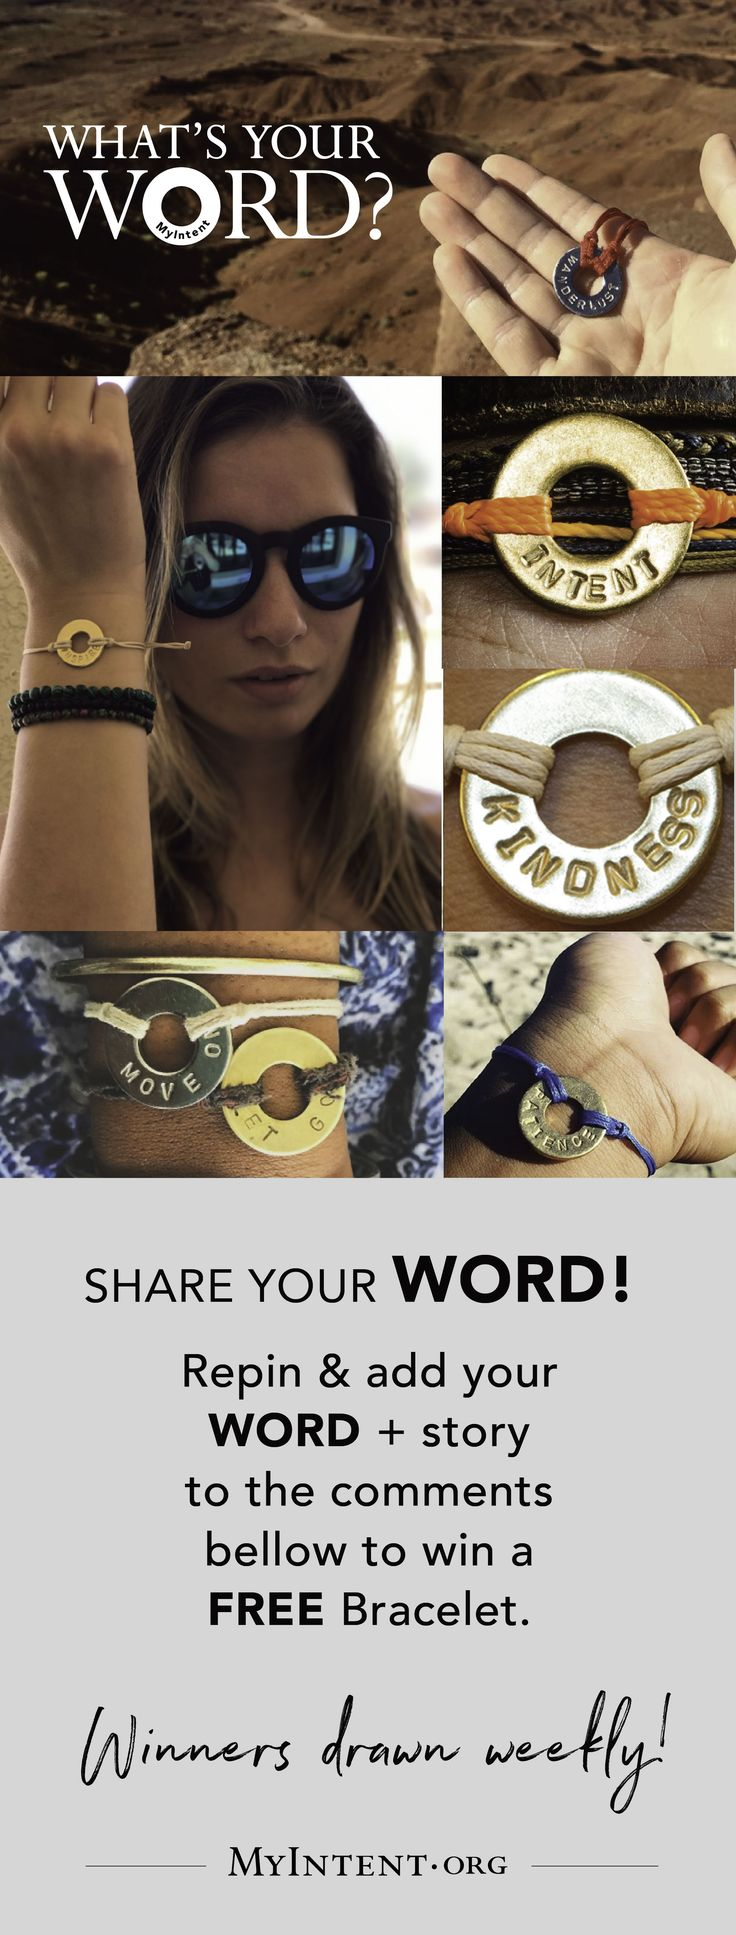 Share YOUR WORD and Story Below with us to win your own personalized bracelet to set your intent. Join the MyIntent Project and make a change!  https://myintent.org